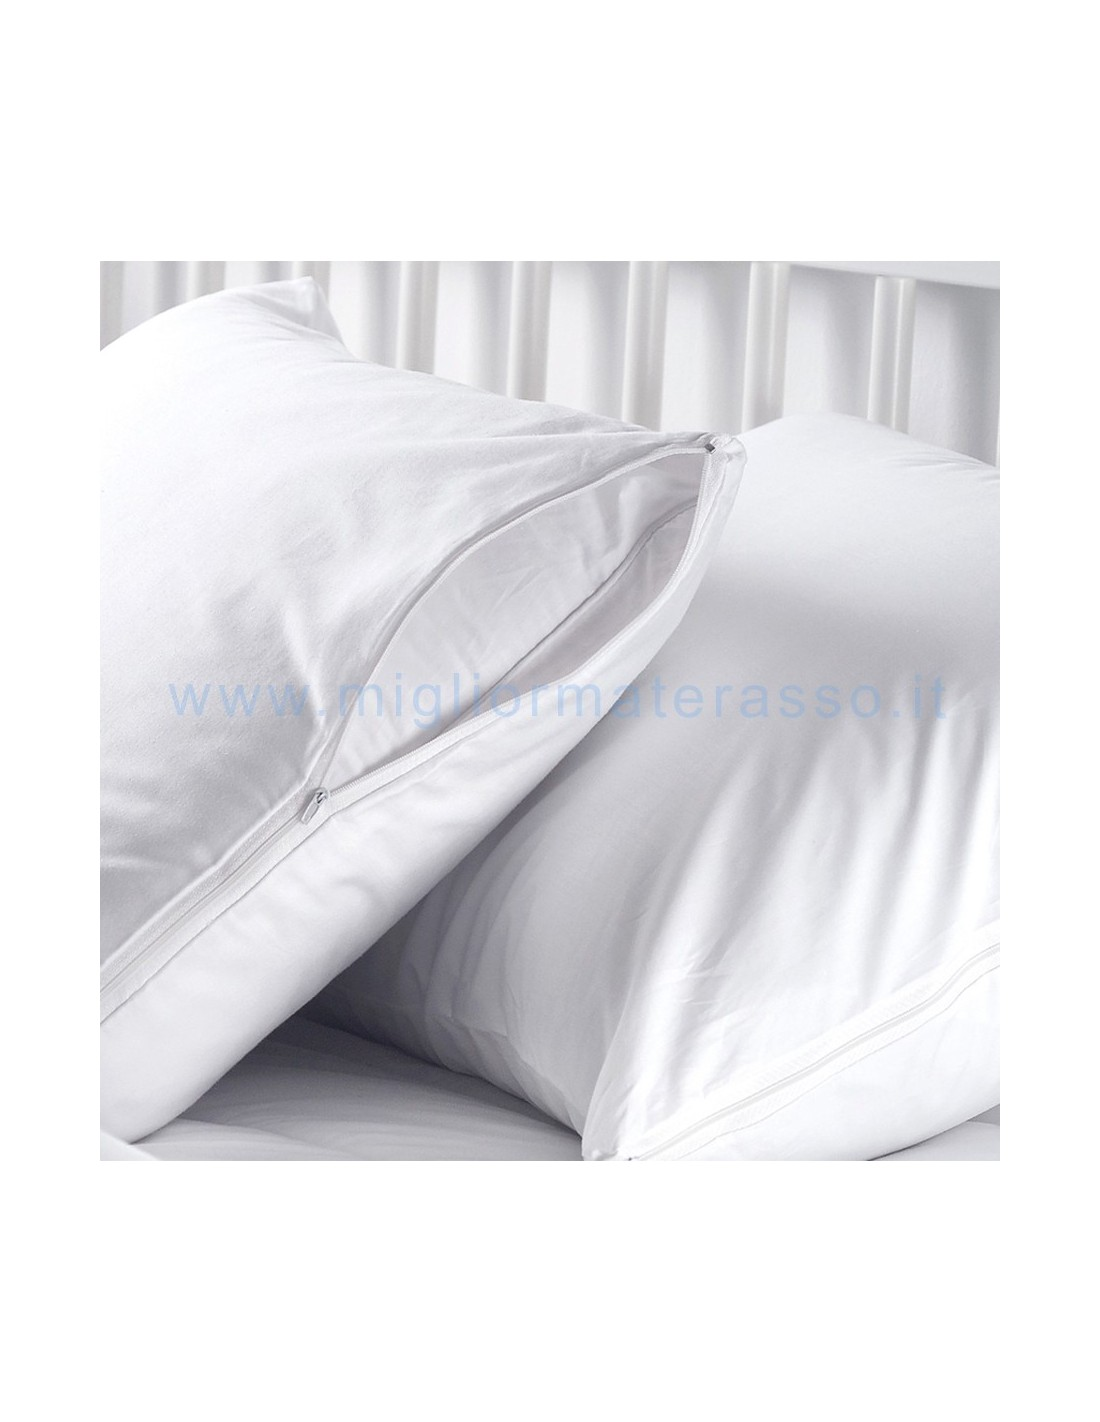 Pillow Cover Waterproof